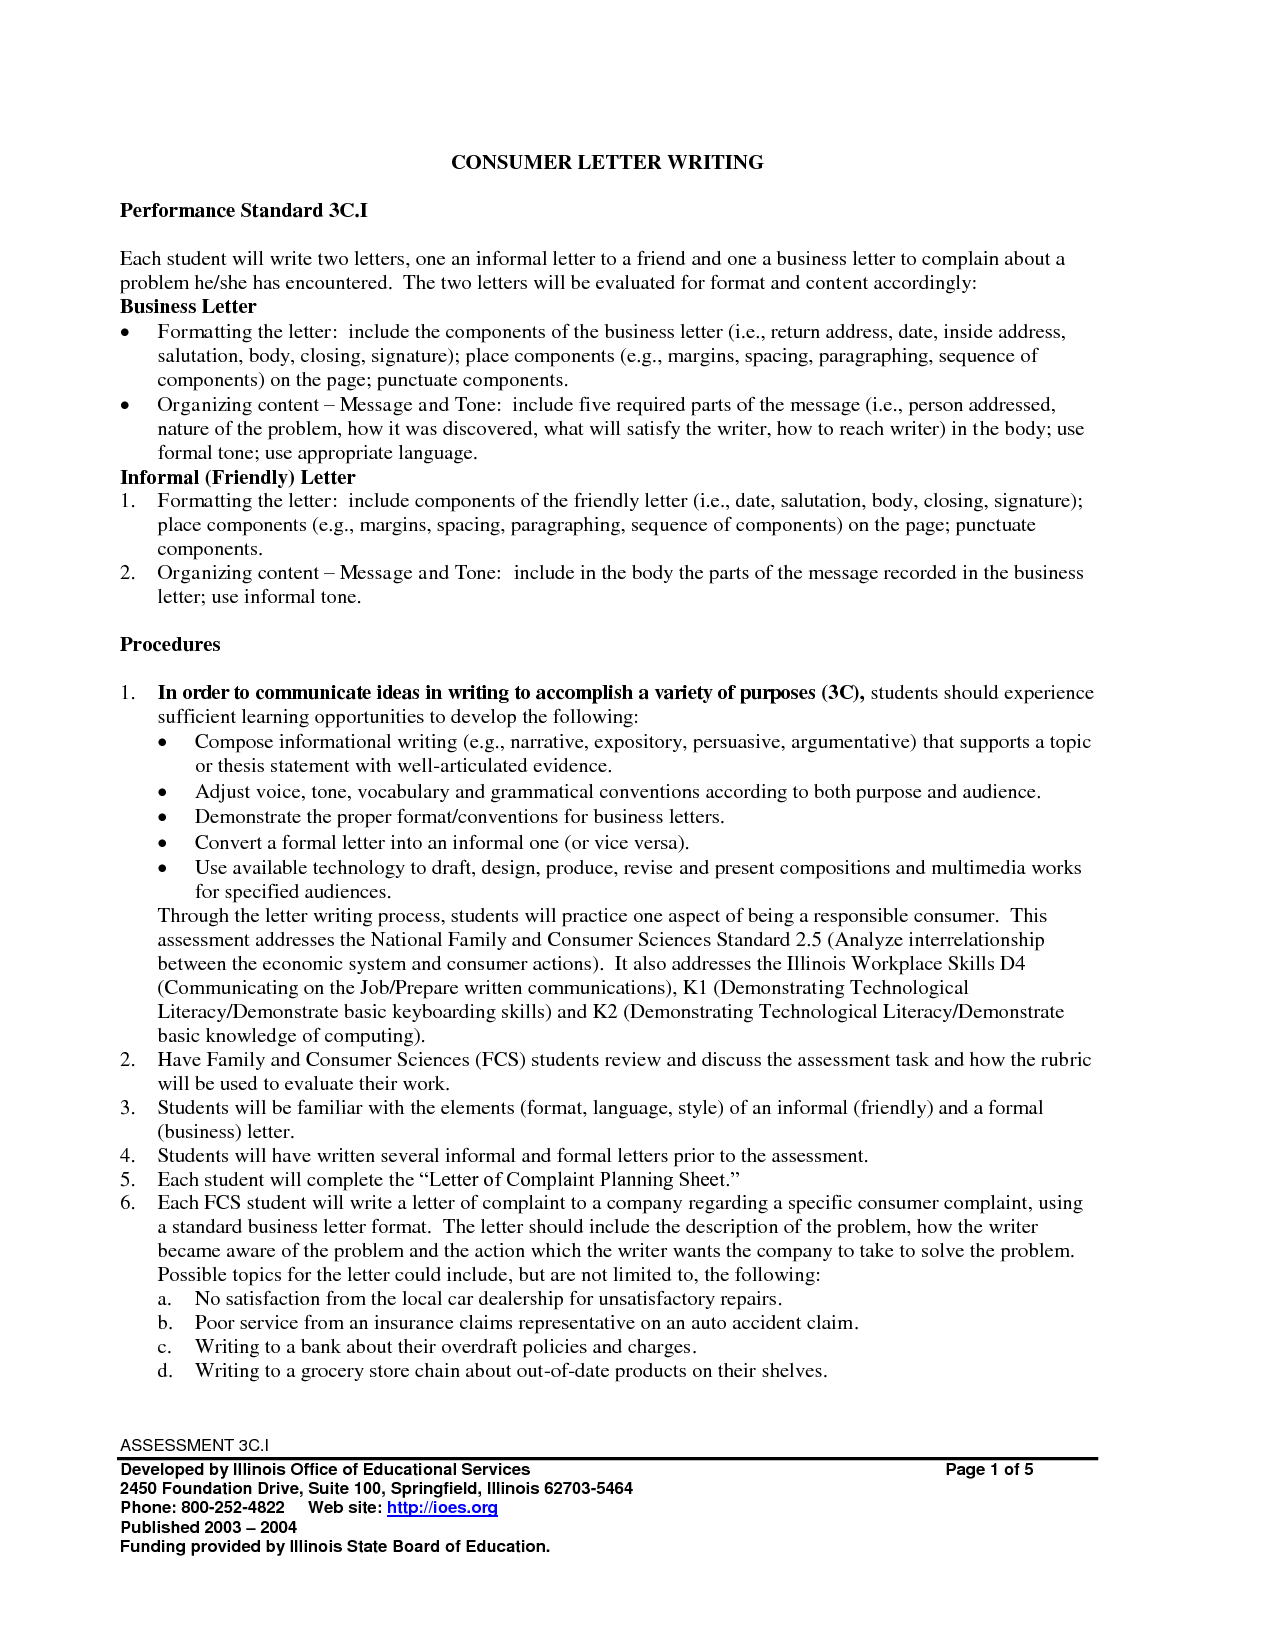 patient recall letter template example-Consumer Letter Write a Consumer letters with sample forms format template and phrases must know tips and guides 20-g